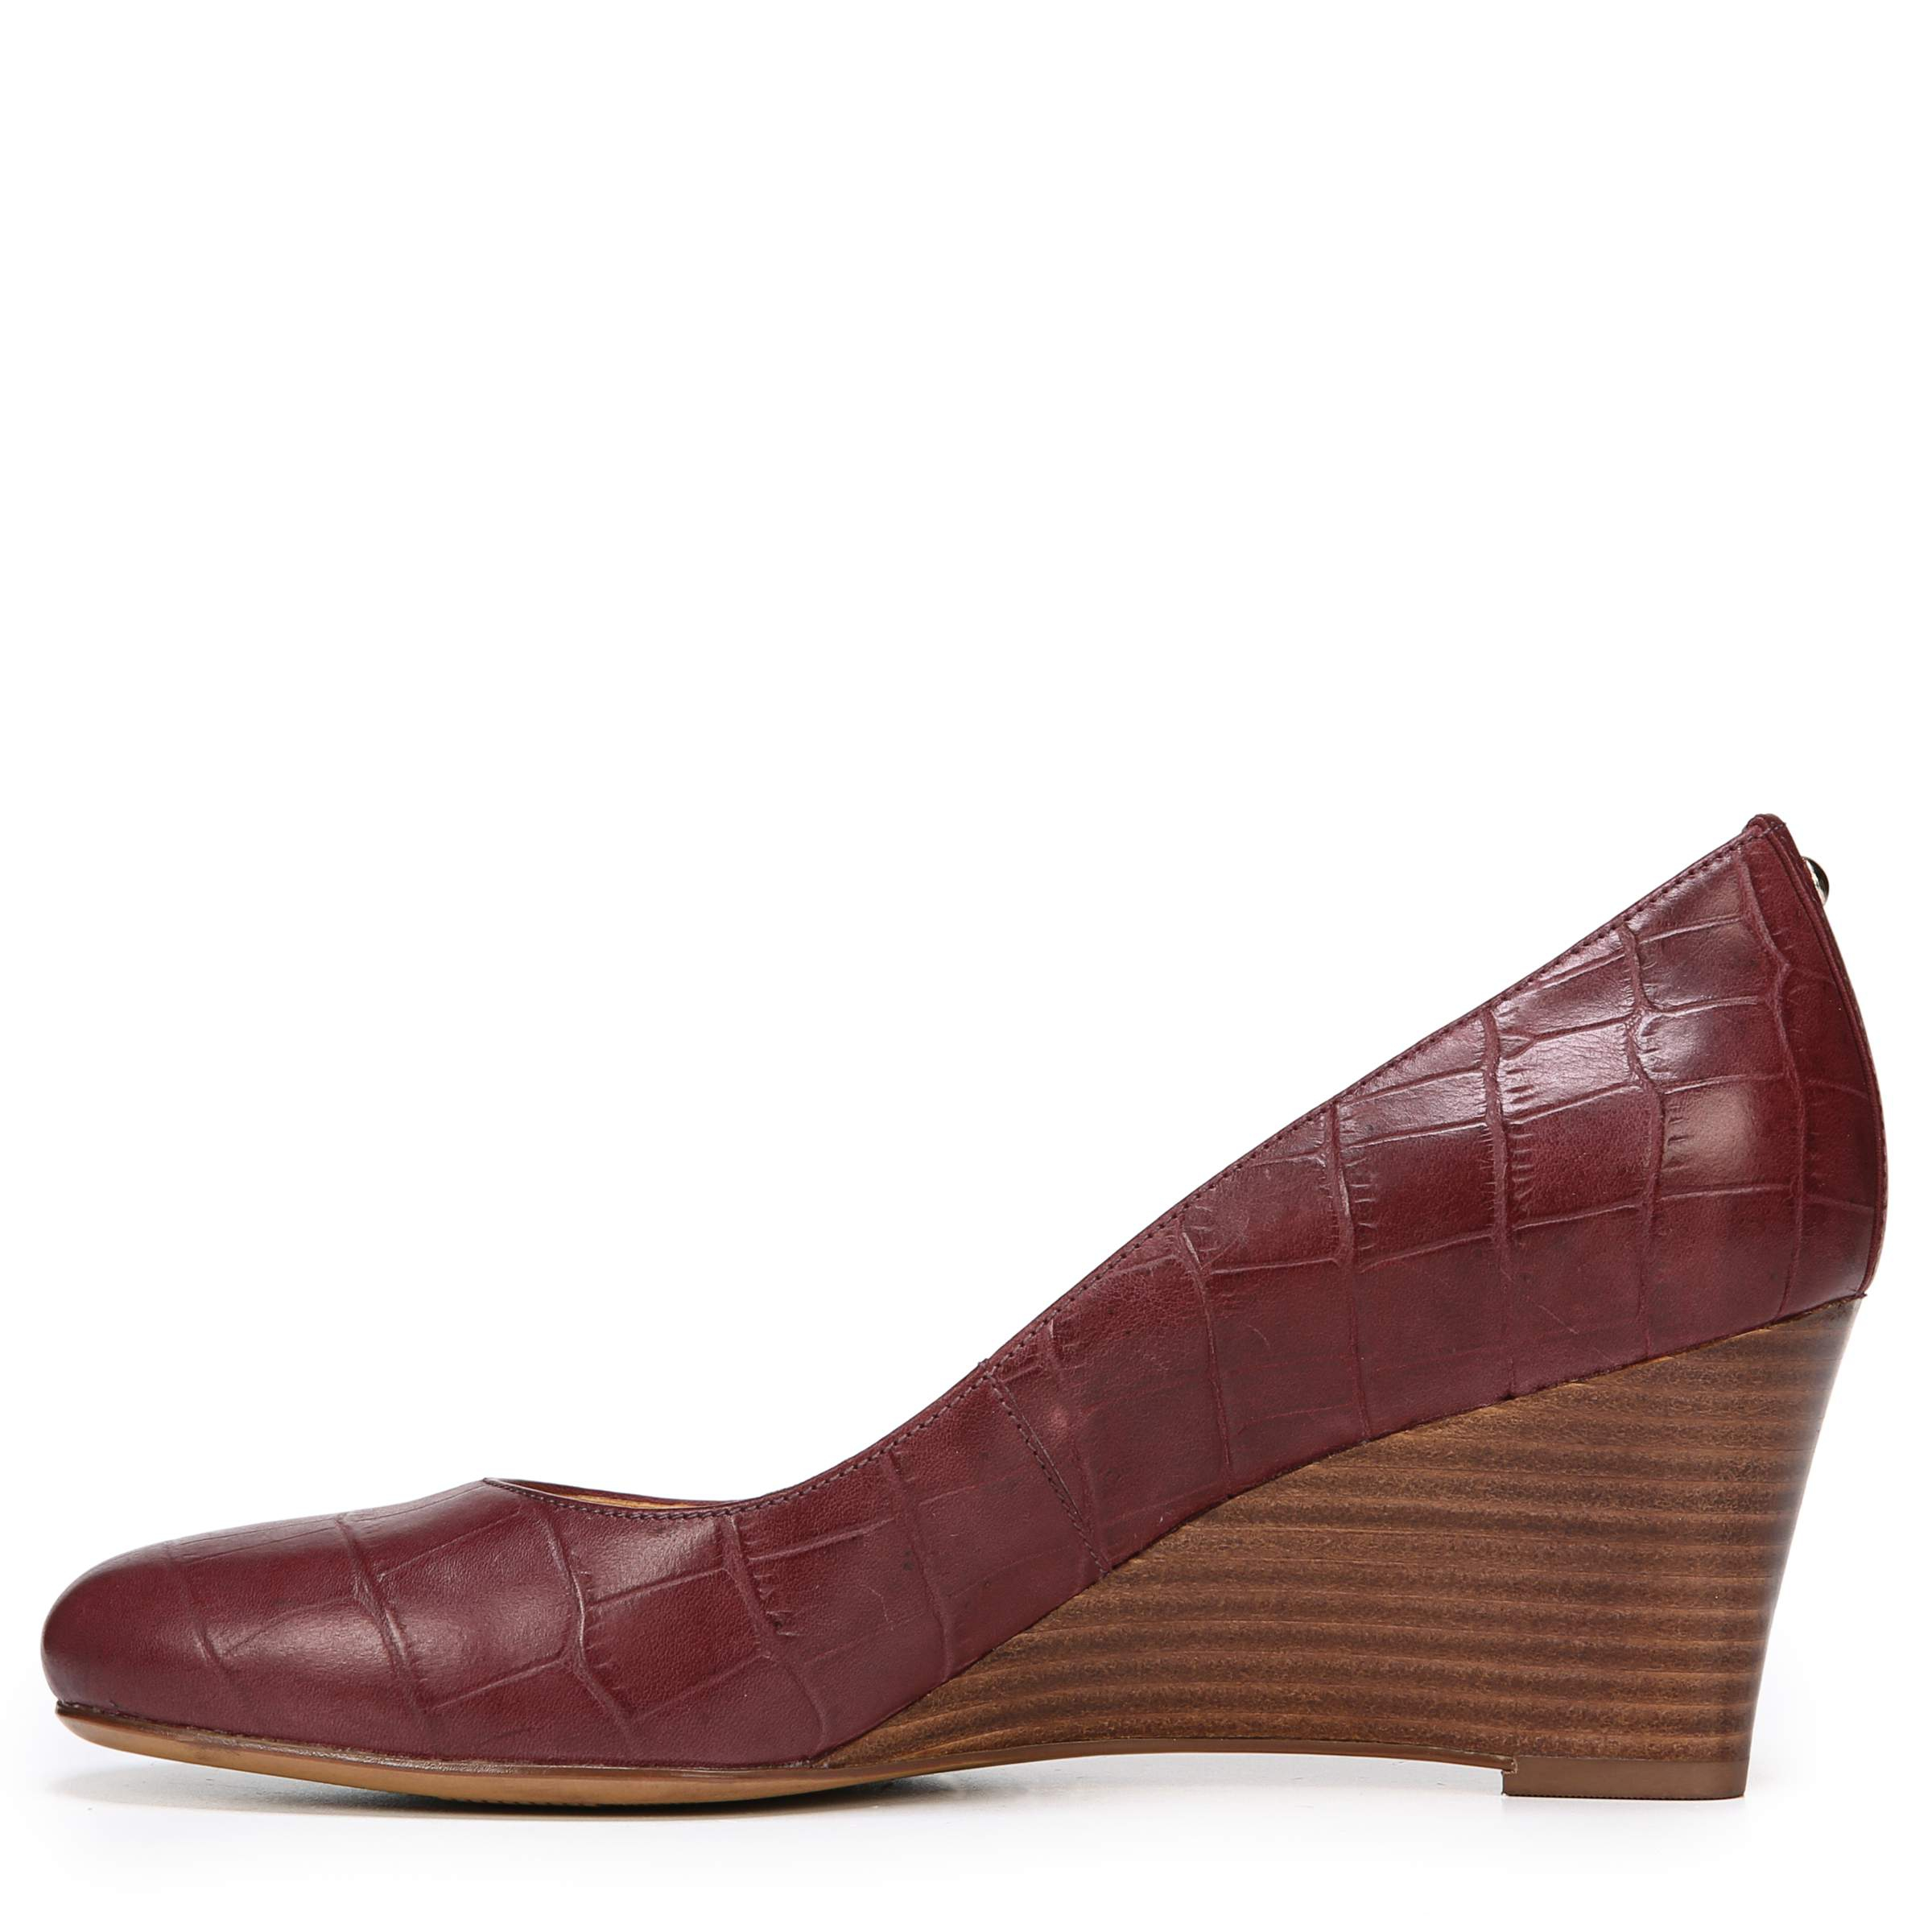 EMILY WEDGES IN WINE CROC